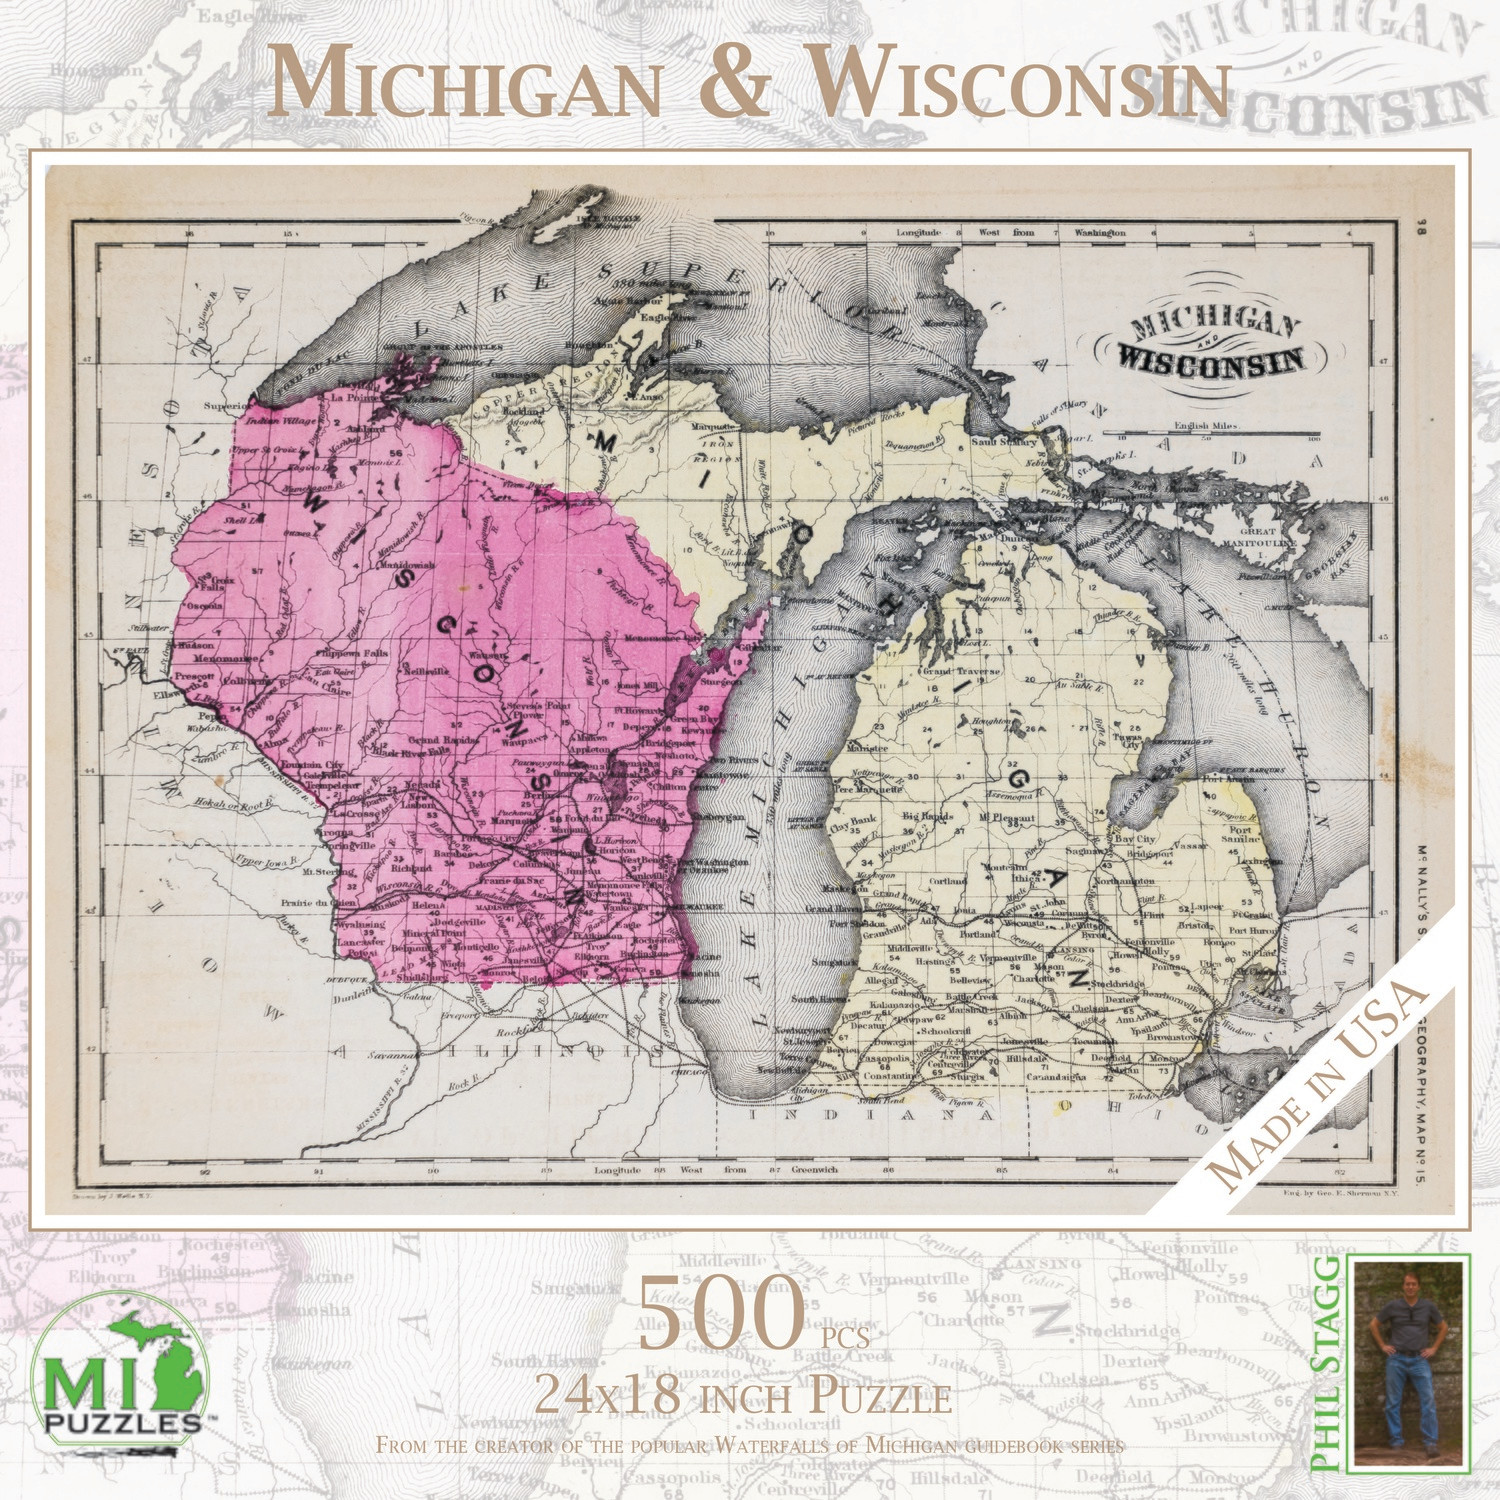 Michigan & Wisconsin Map